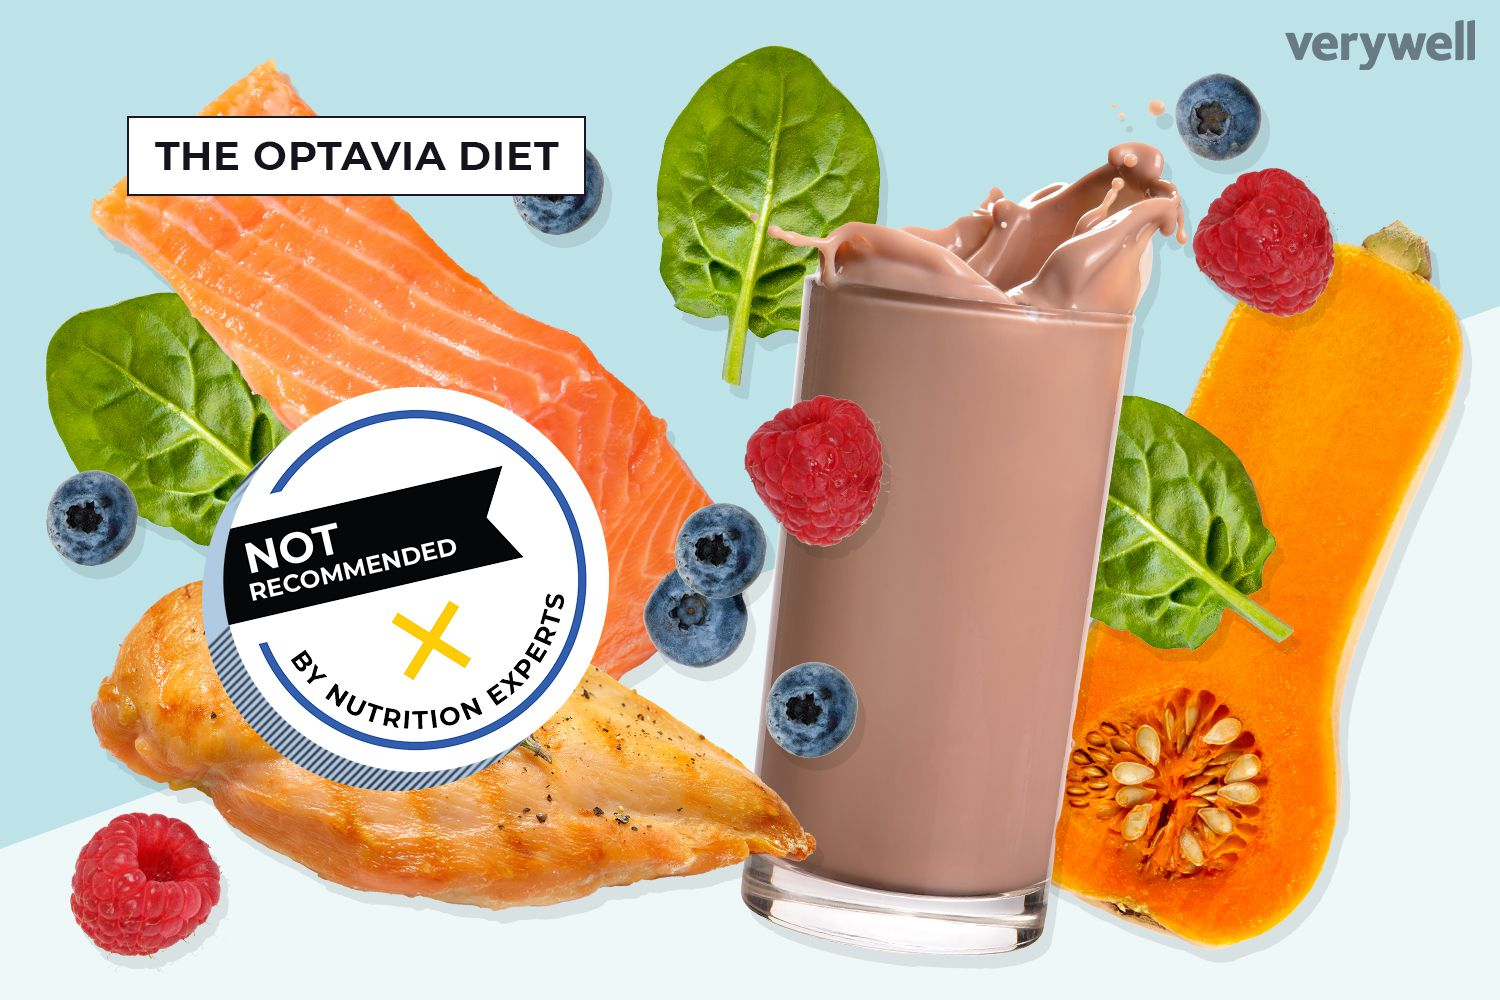 Optavia Diet: Pros, Cons, and What You Can Eat